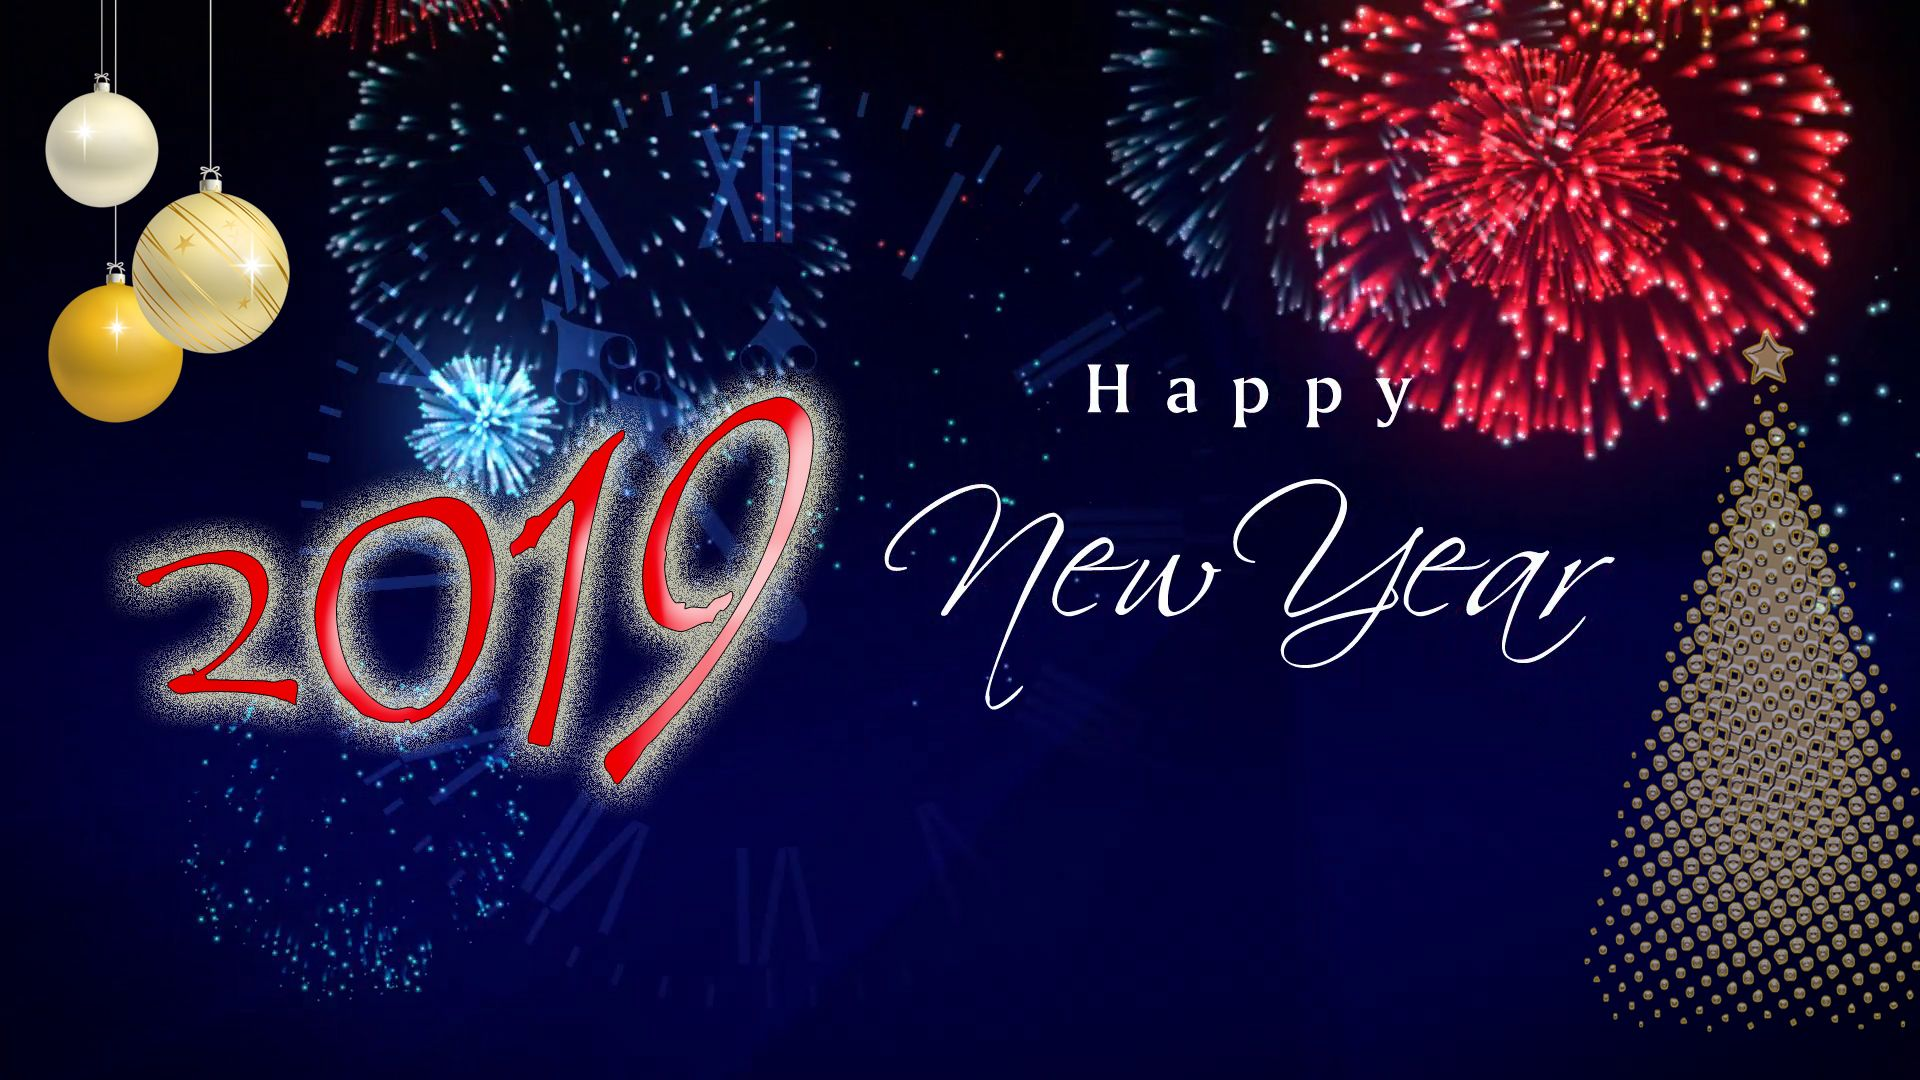 Beautiful Happy New Year 2019 Wallpapers for Desktop